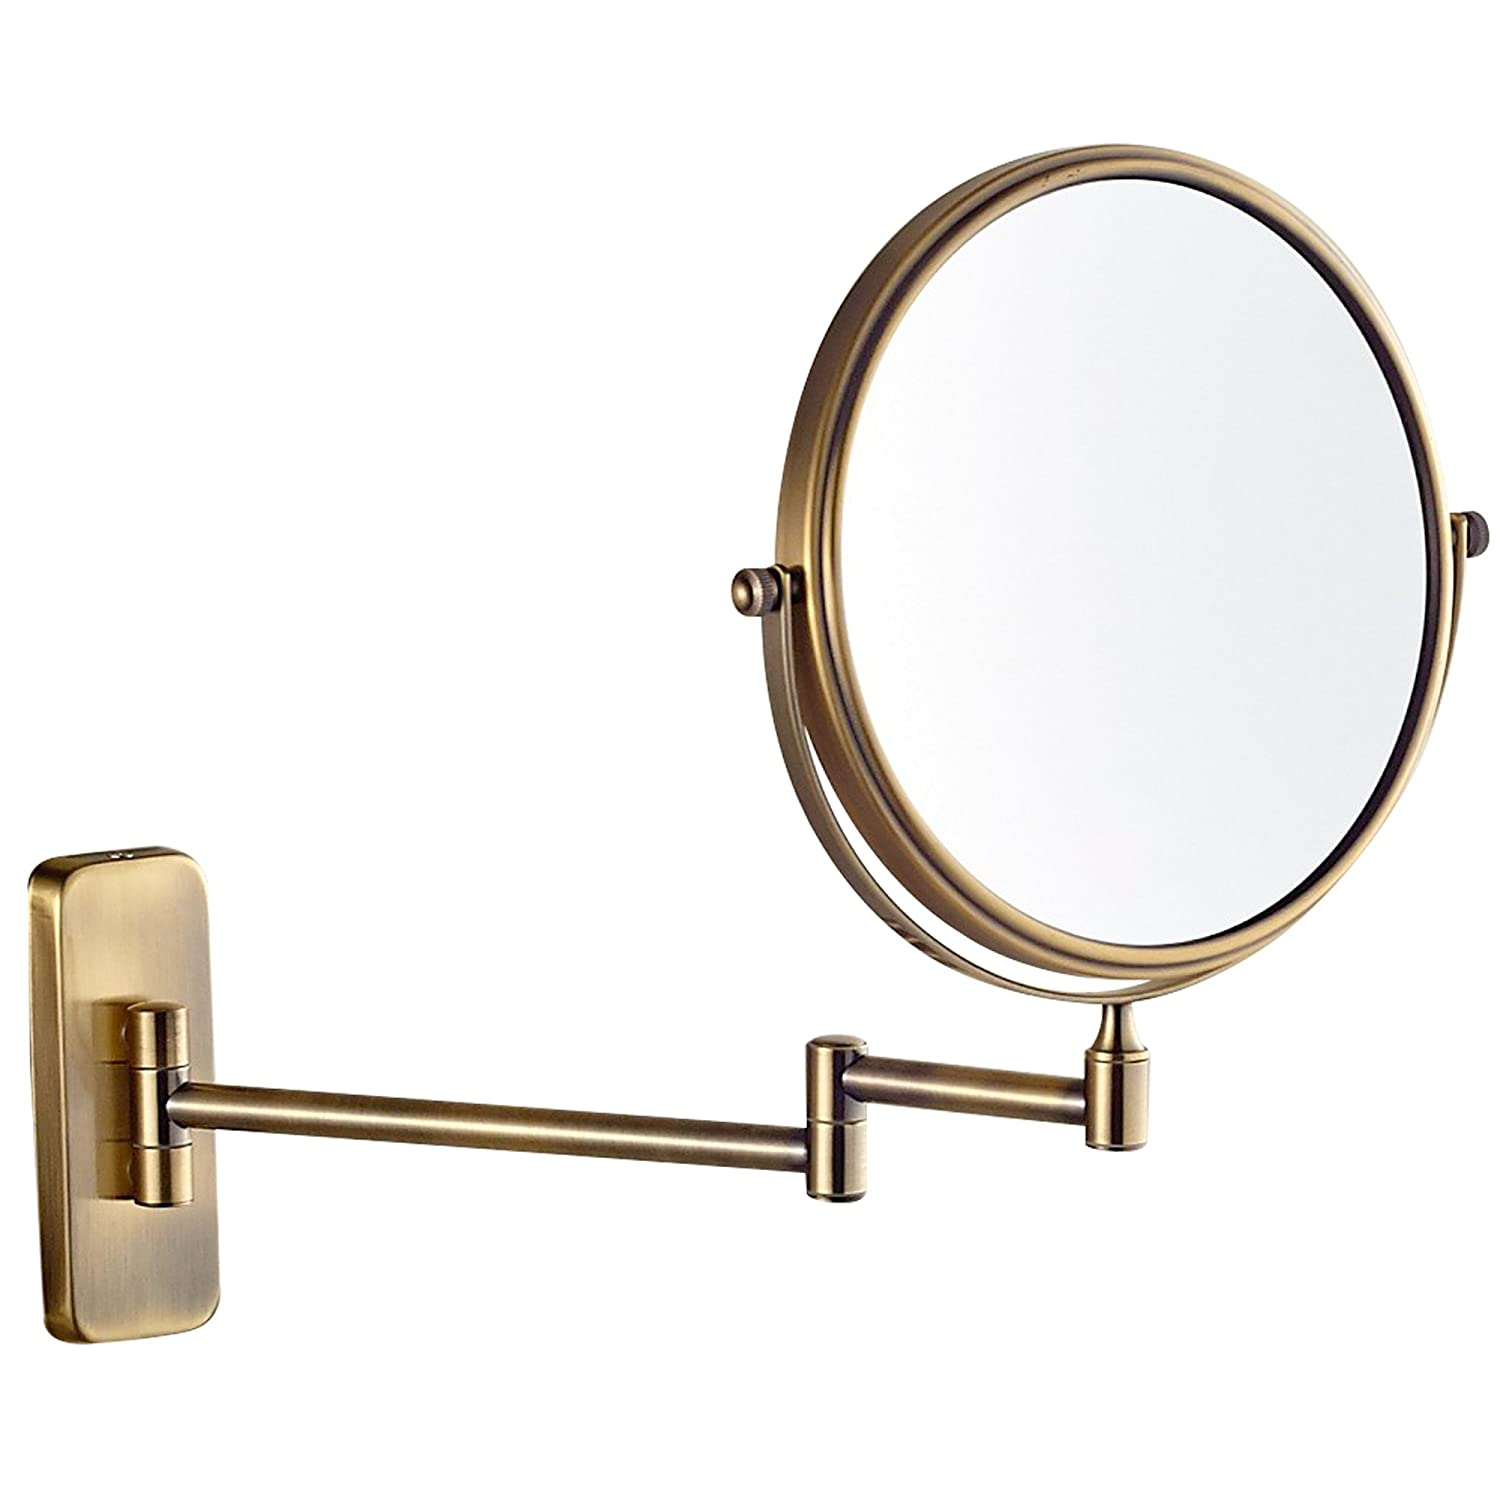 GURUN 8-Inch 2 Face Wall Mount Makeup Mirrors with 5x Magnification, Antique Brass Finished M1406K 8 inch5Magnification